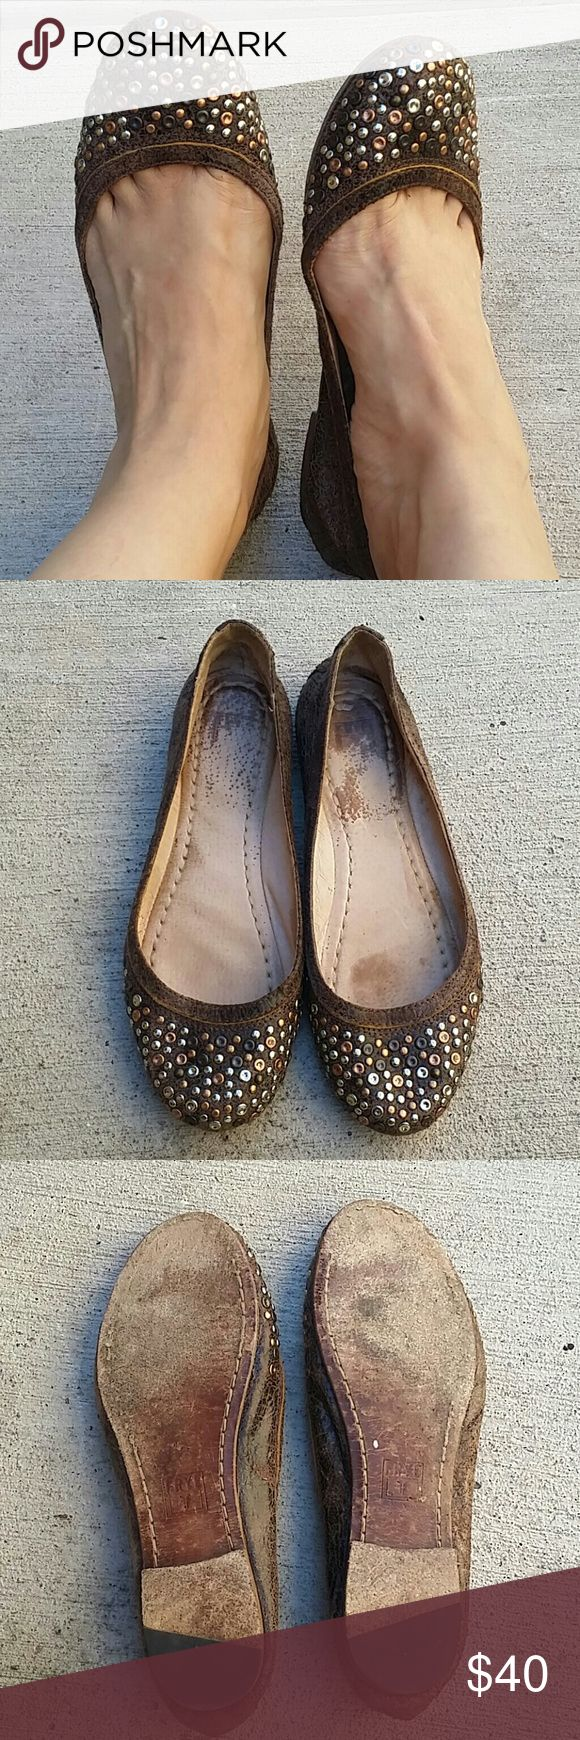 FRYE Flats Cutest! Good condition, previously loved but very well taken care of :)still have lots of life Frye Shoes Flats & Loafers